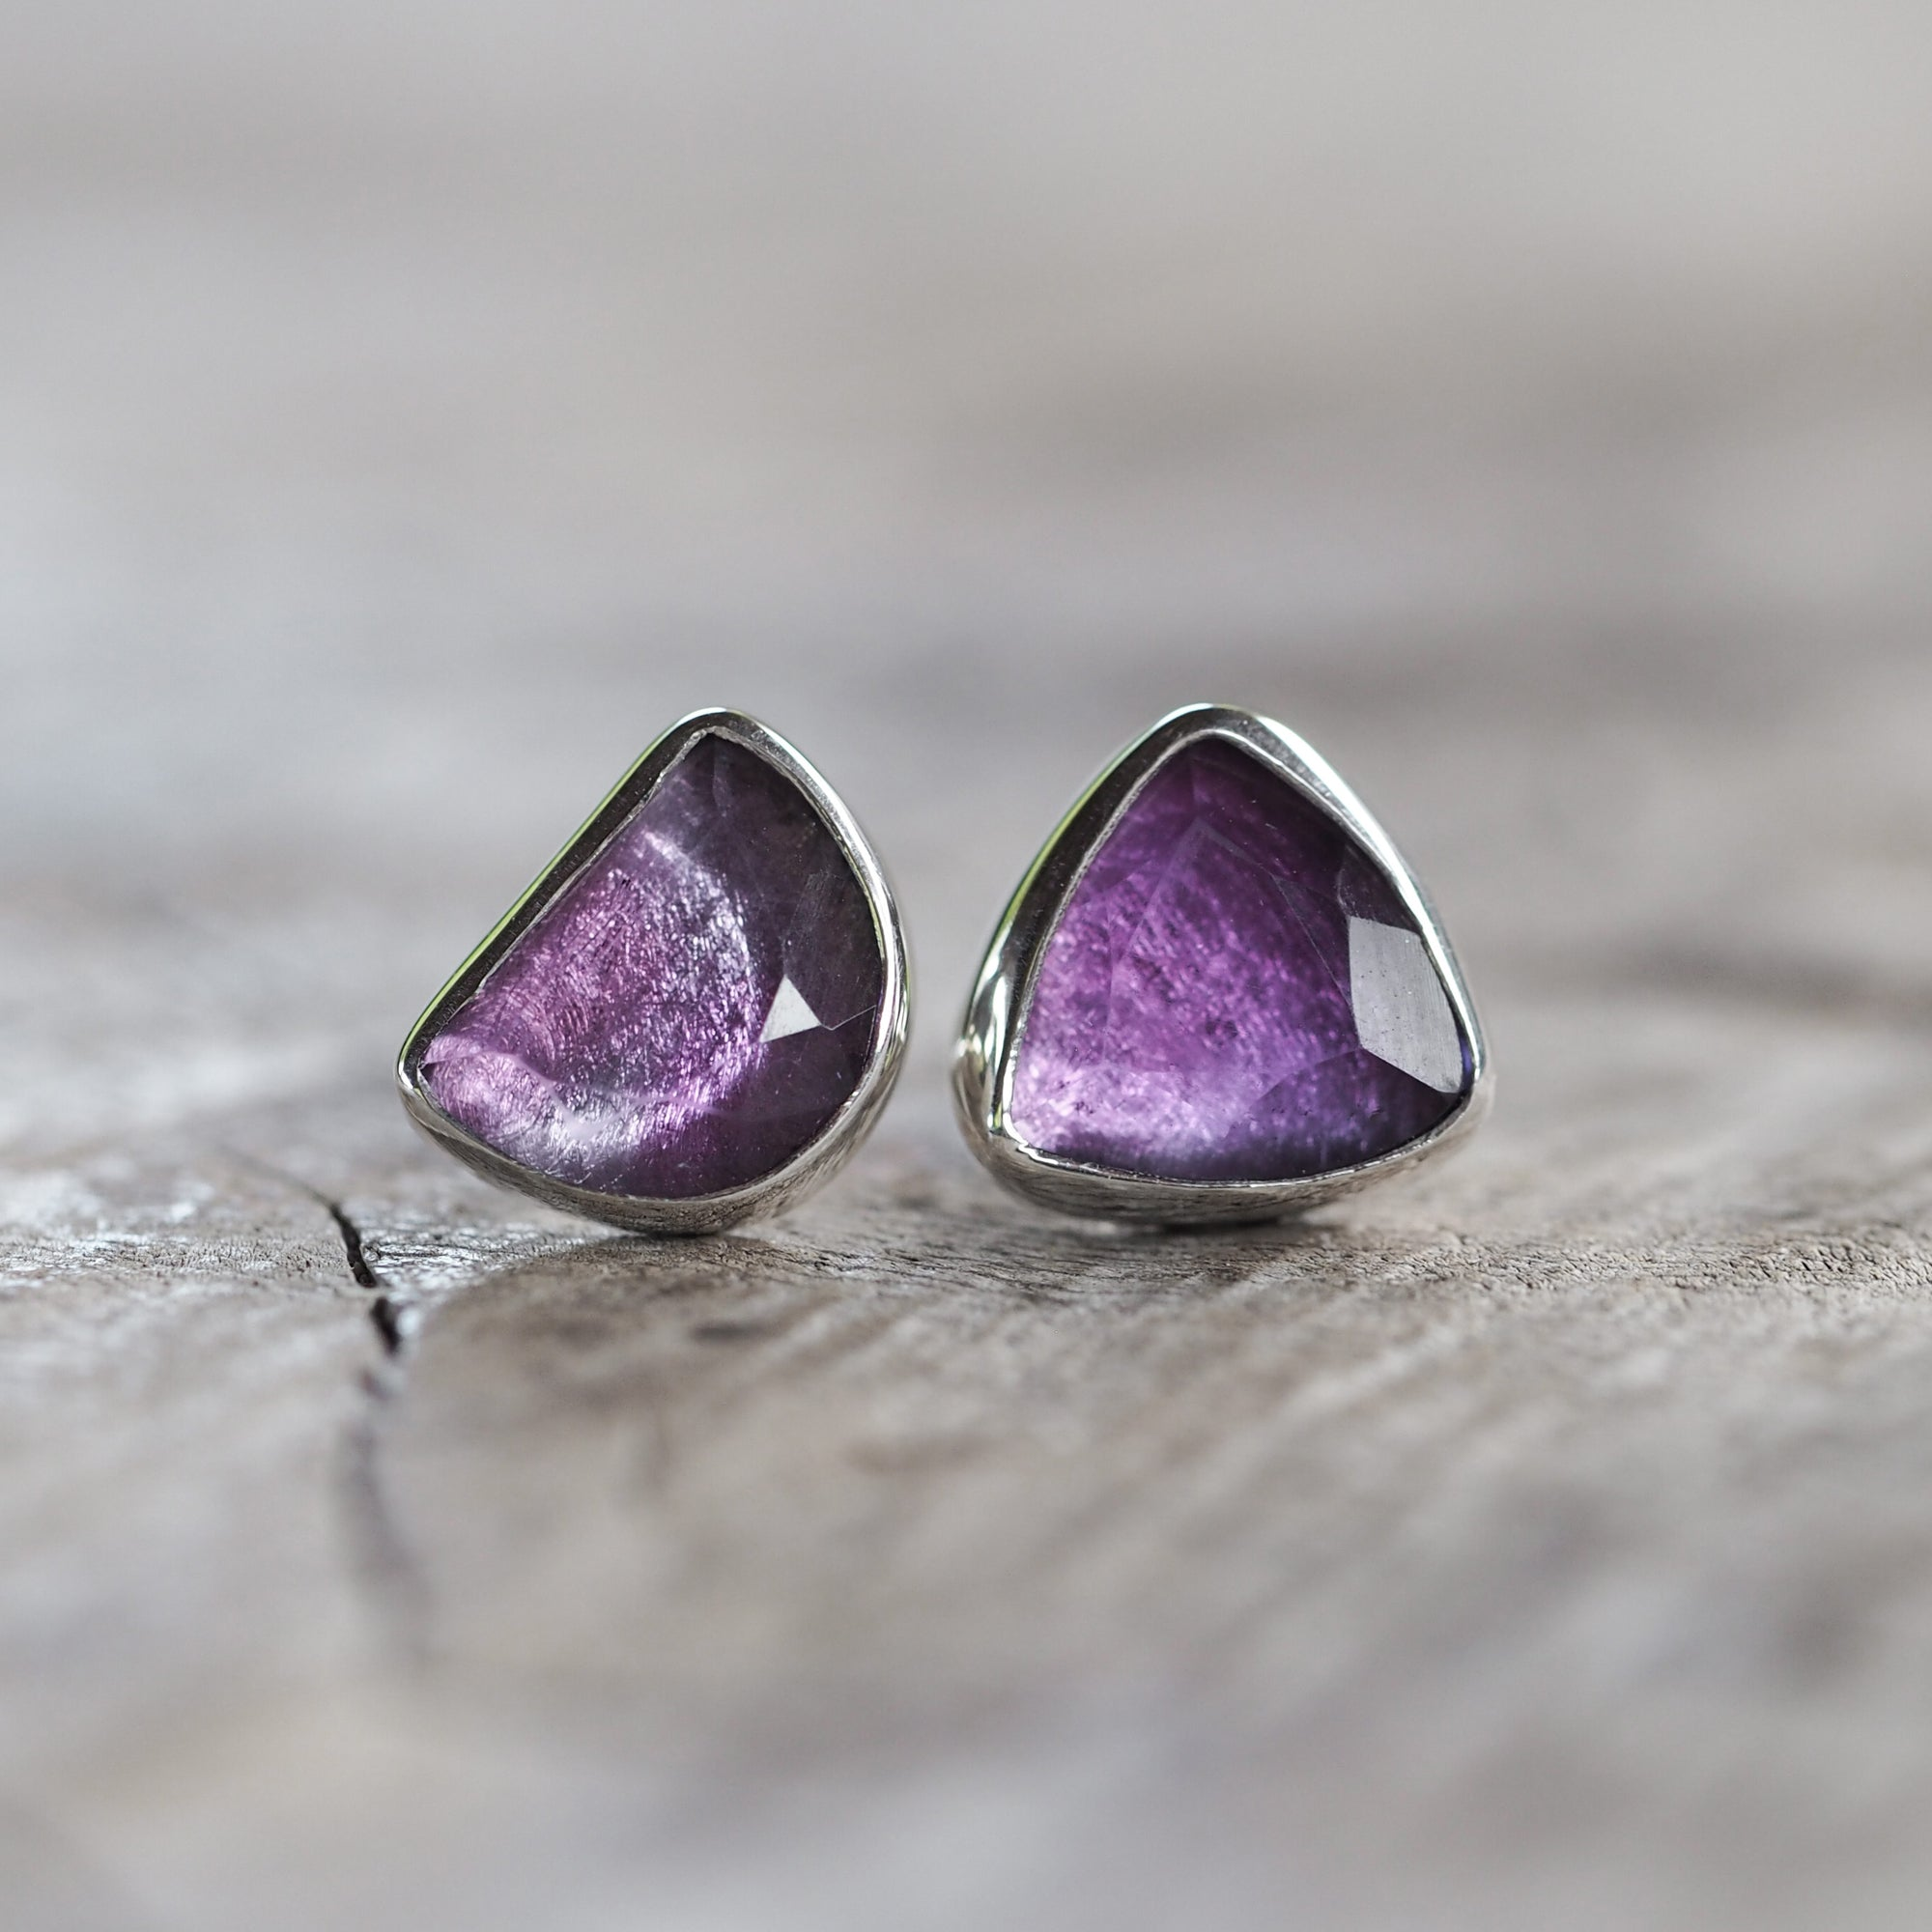 Amethyst Earrings - Gardens of the Sun Jewelry